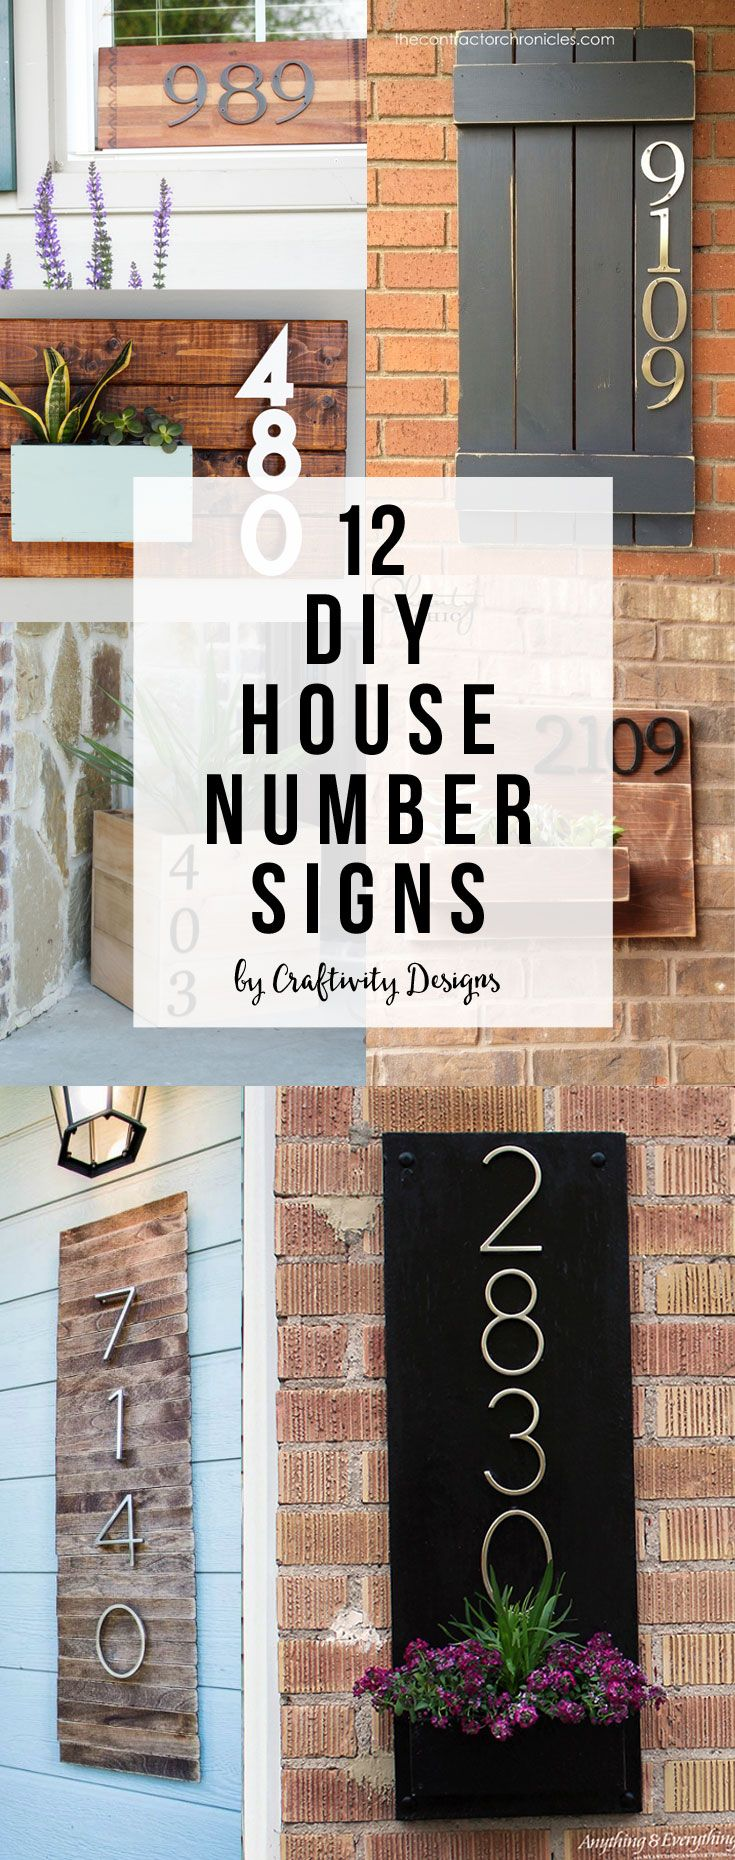 Diy for your house